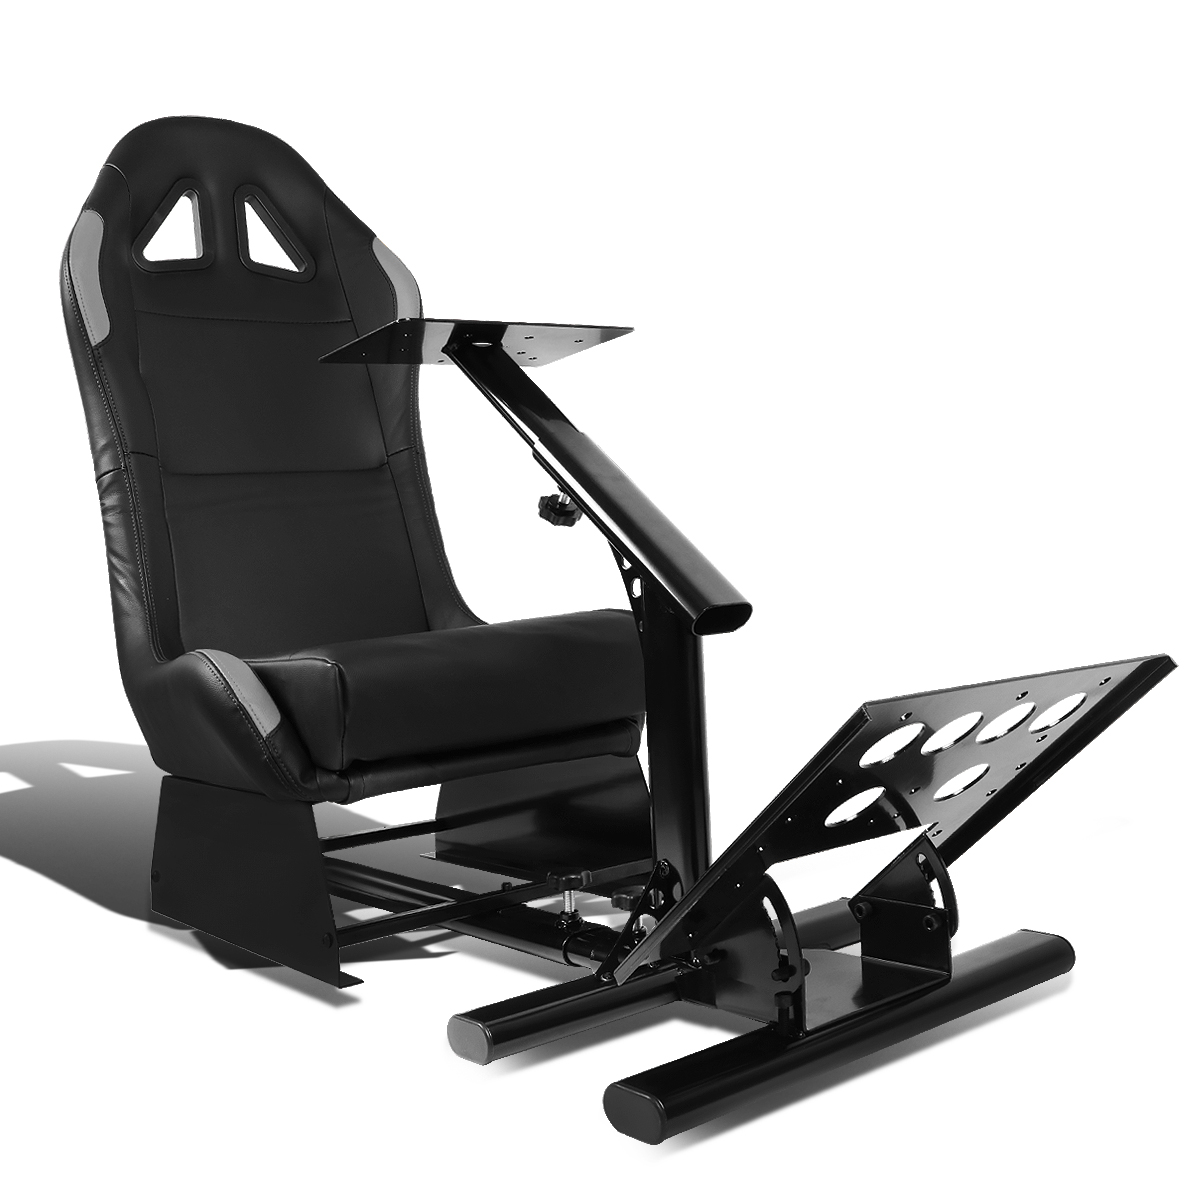 Racing Seat Driving Simulator Cockpit Adjustable Gaming Chair + Steering Wheel / Pedal / Gear Shifter Mount (Green)